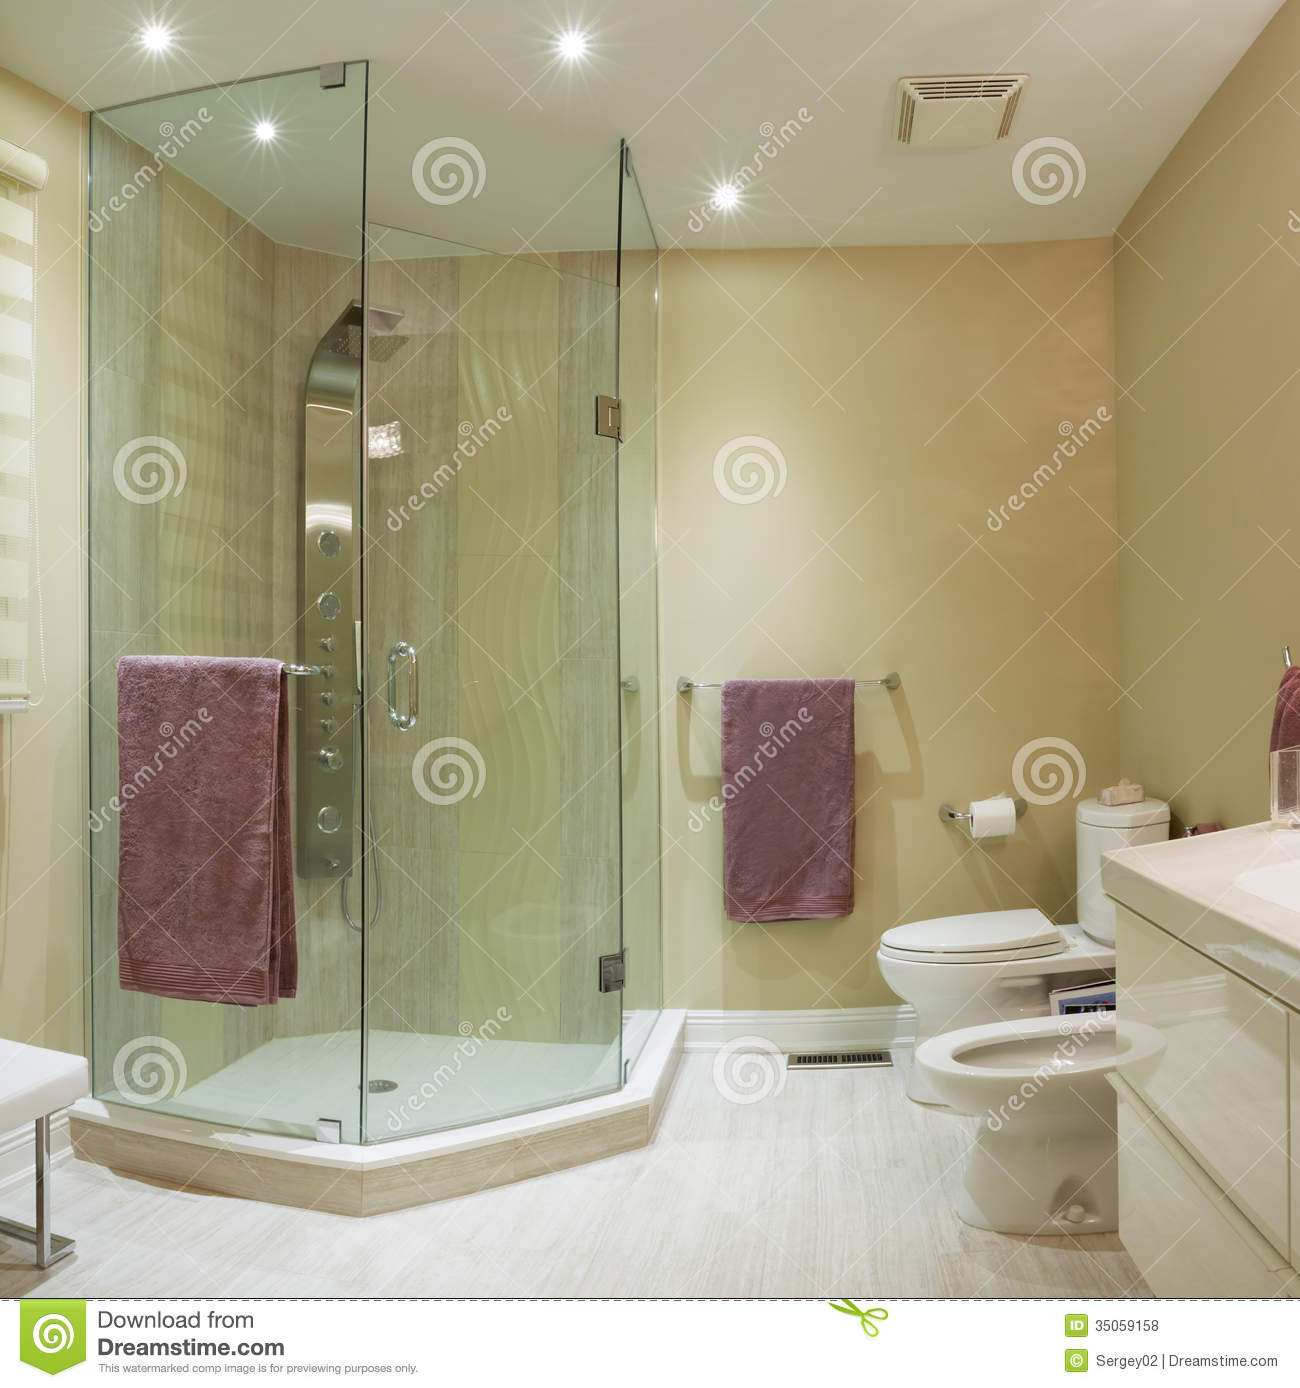 Interior design royalty free stock photos image 35059158 - Home bathrooms designs ...